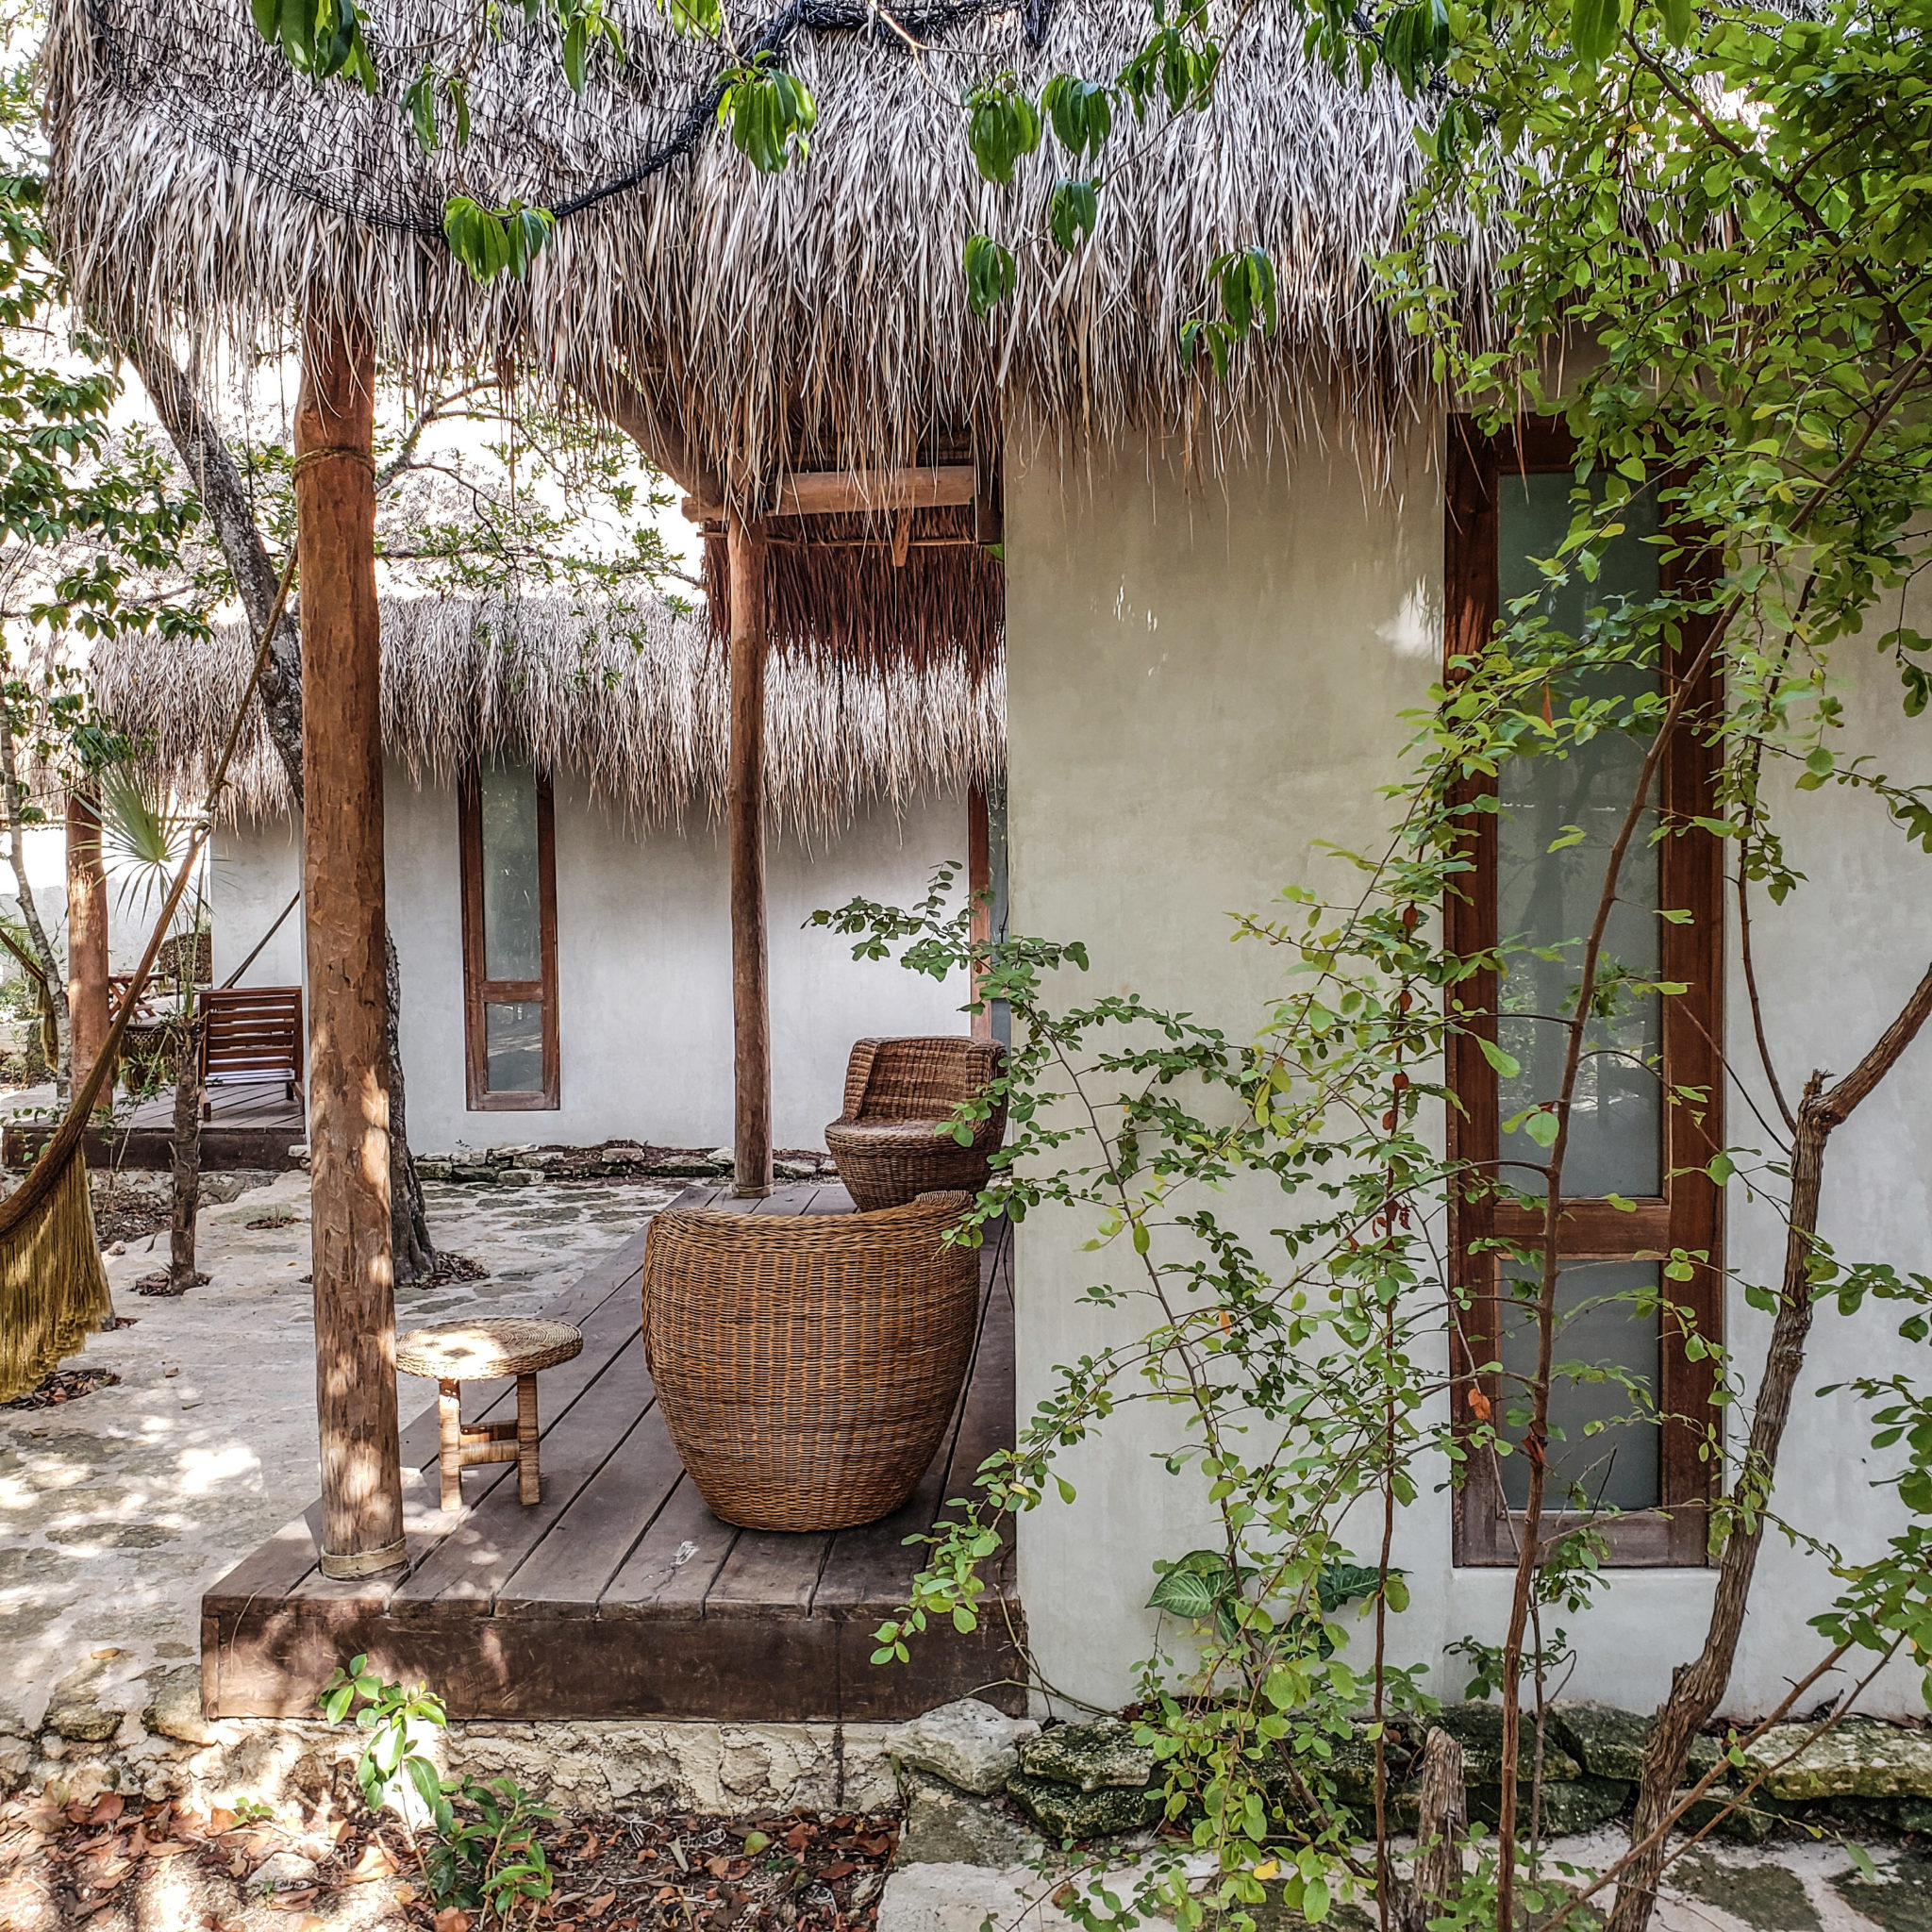 Acacia Jungle Bungalows Tulum - Exterior Vibes